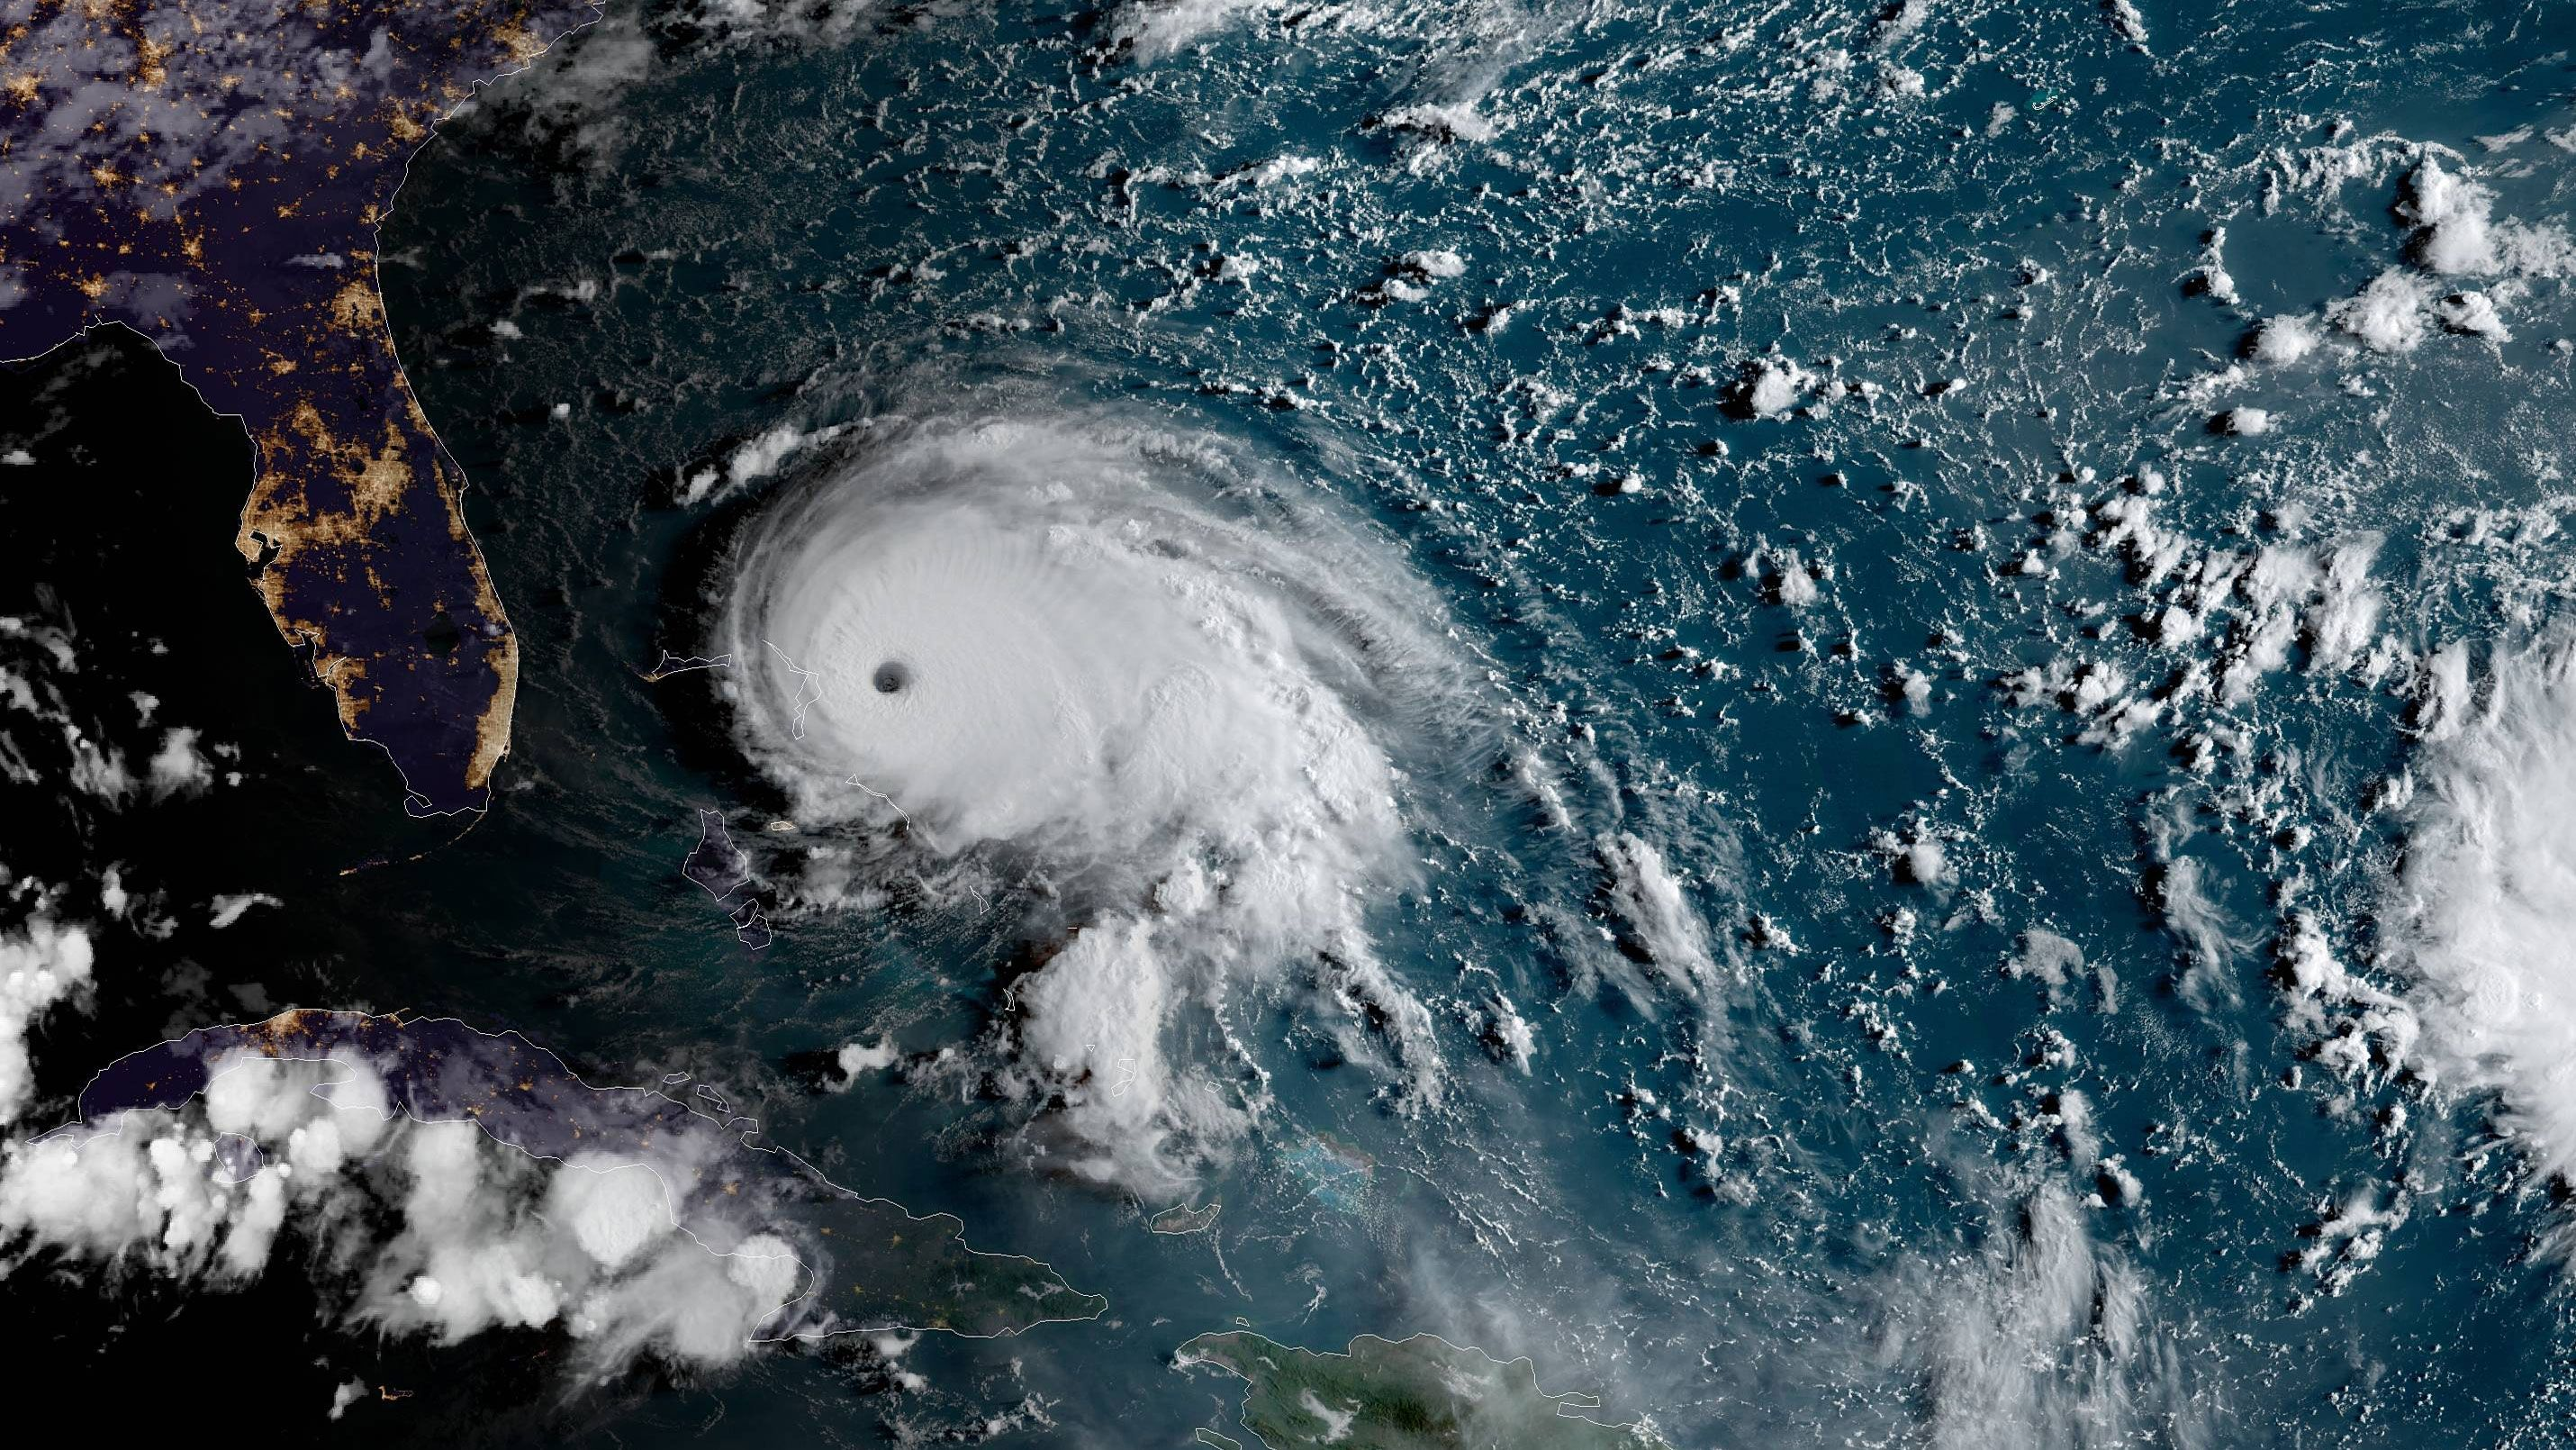 Hurricane Dorian Now A Category 5 Storm Noaa Sunday Landfall Is Possible In The Islands Of The North Bahamas As A C Storm Surge Florida East Coast Bahamas